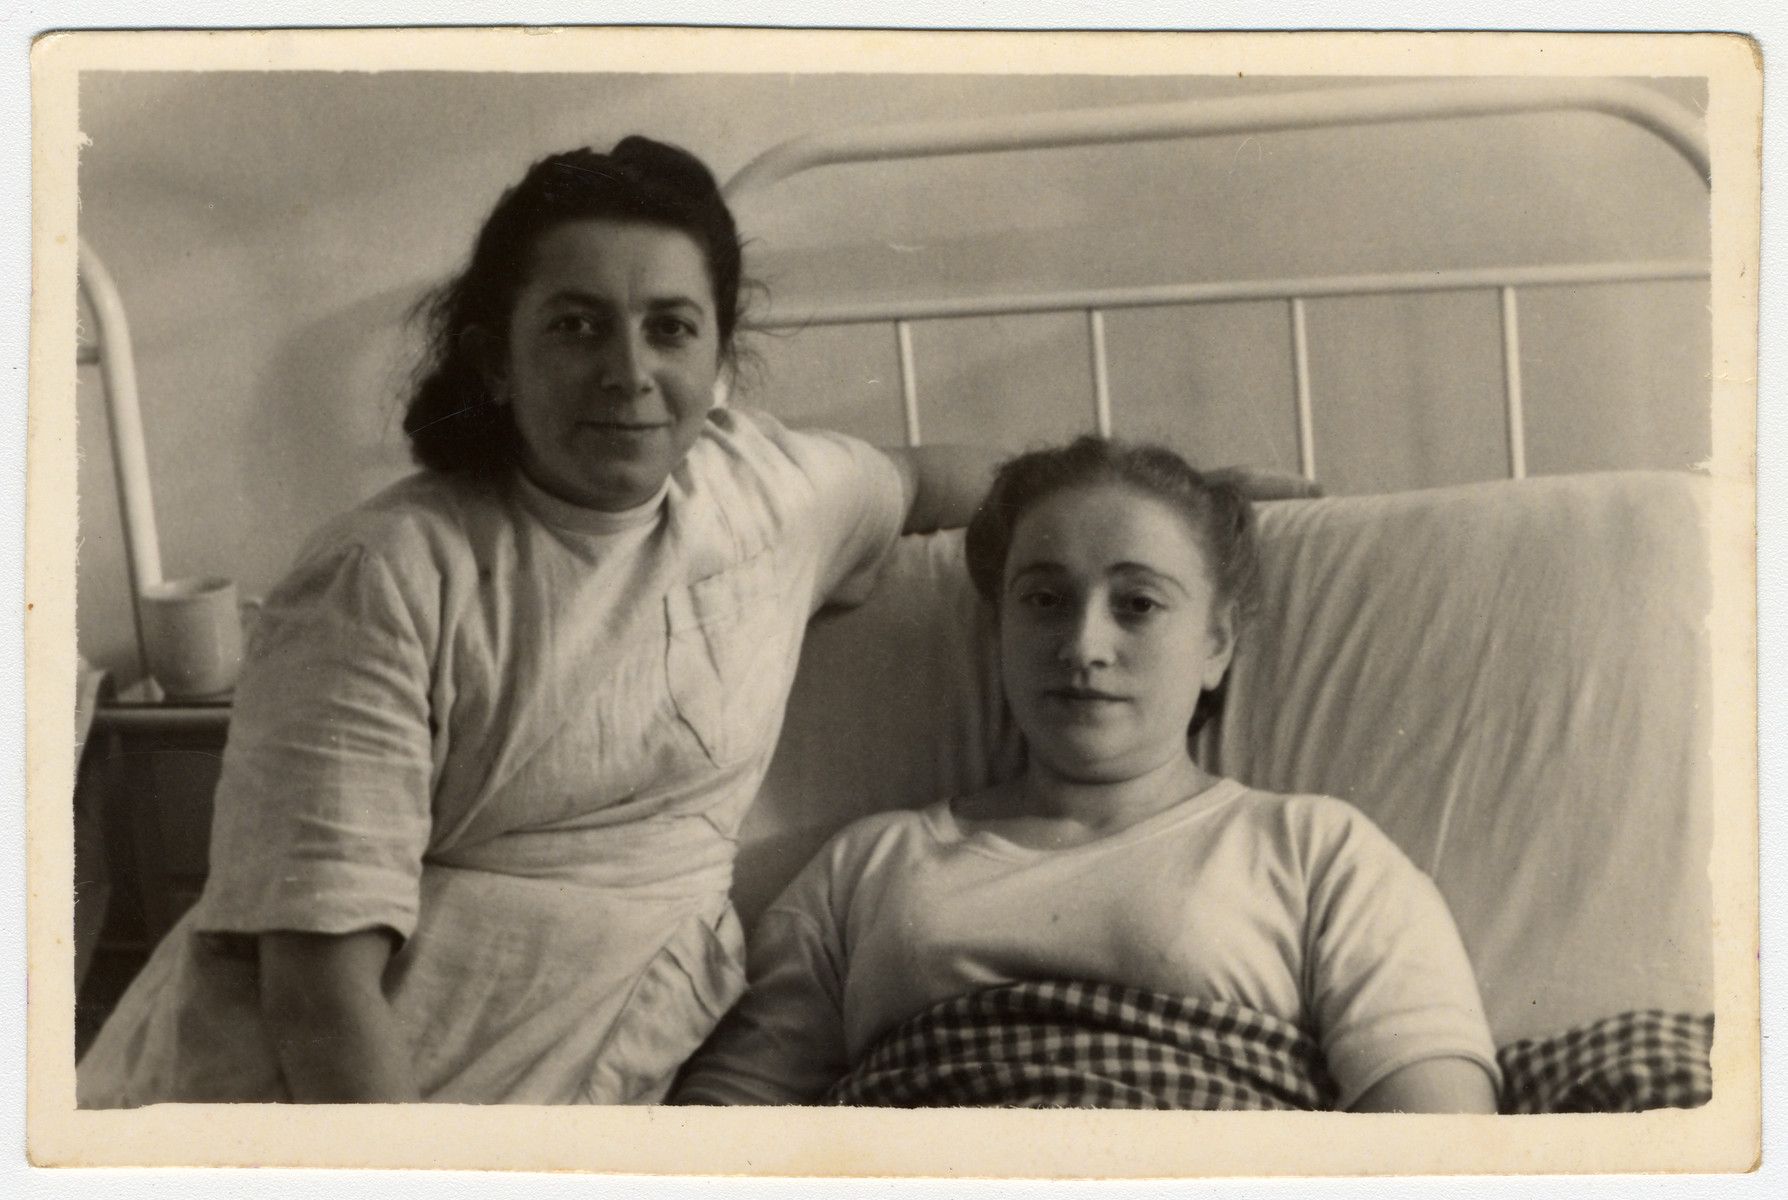 Regina Gertner convalesces in the hospital at the Foehrenwald Displaced Persons Camp.